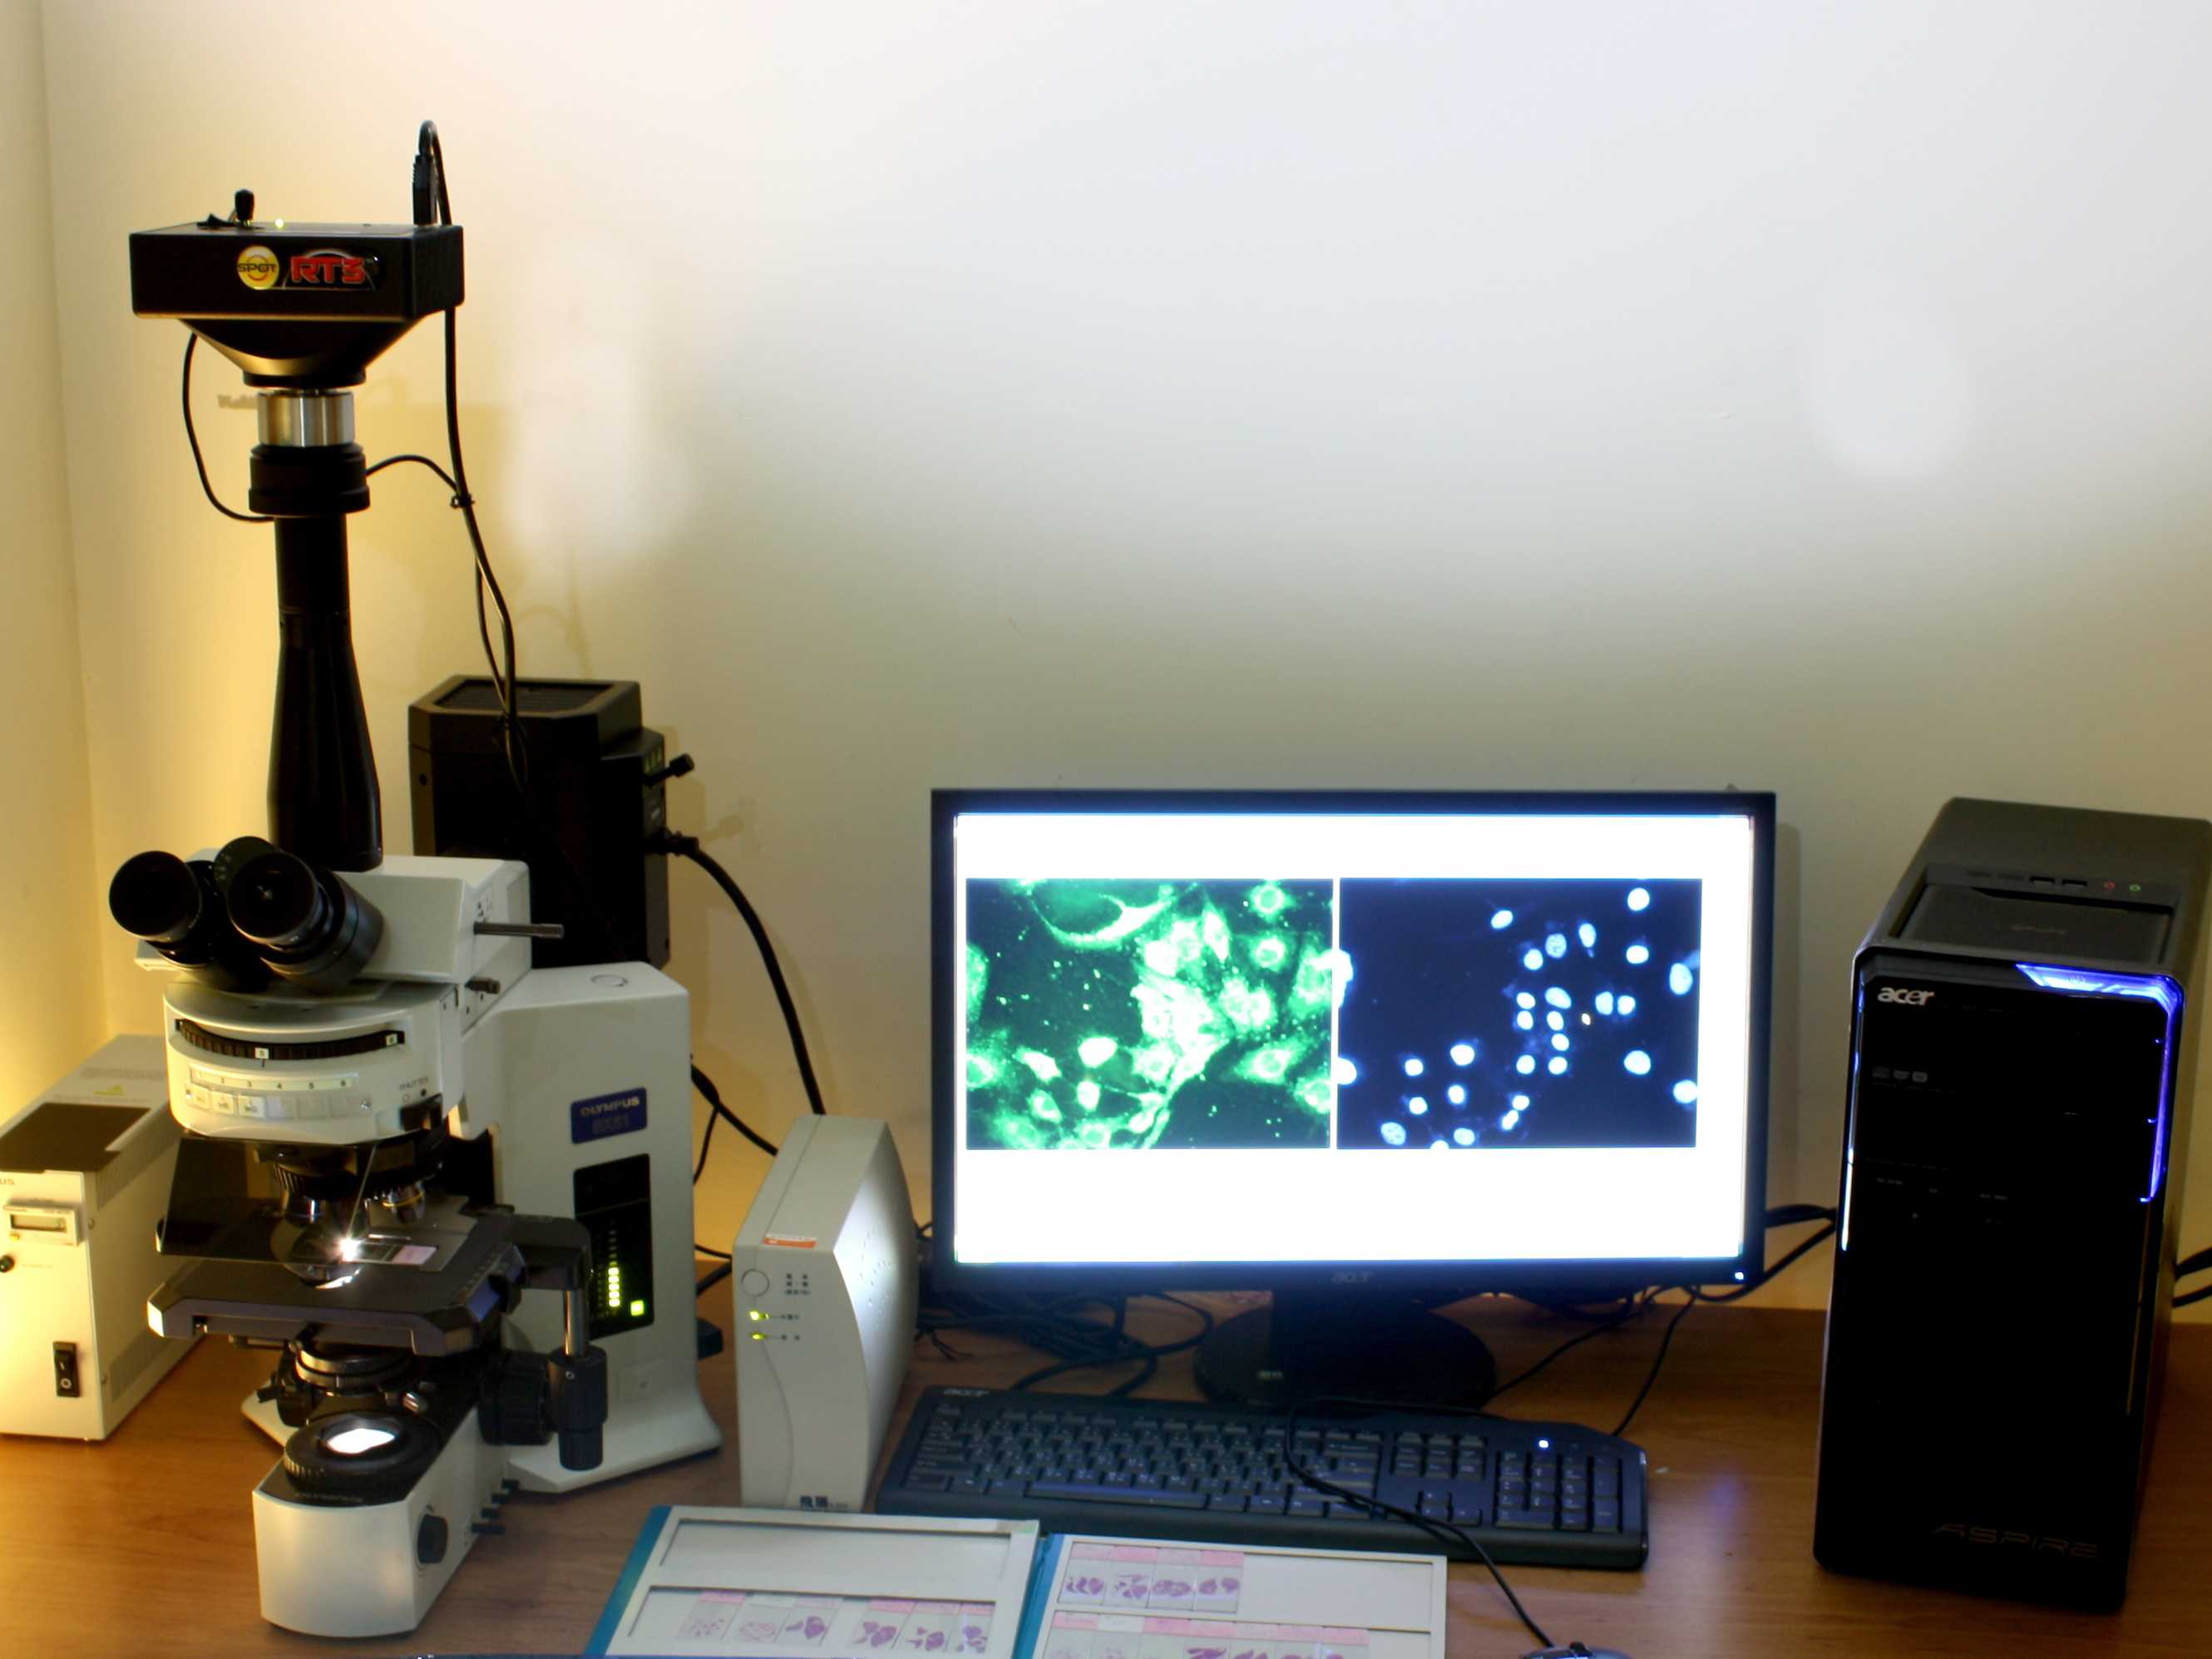 olympus bx41 fluorescence microscope manual